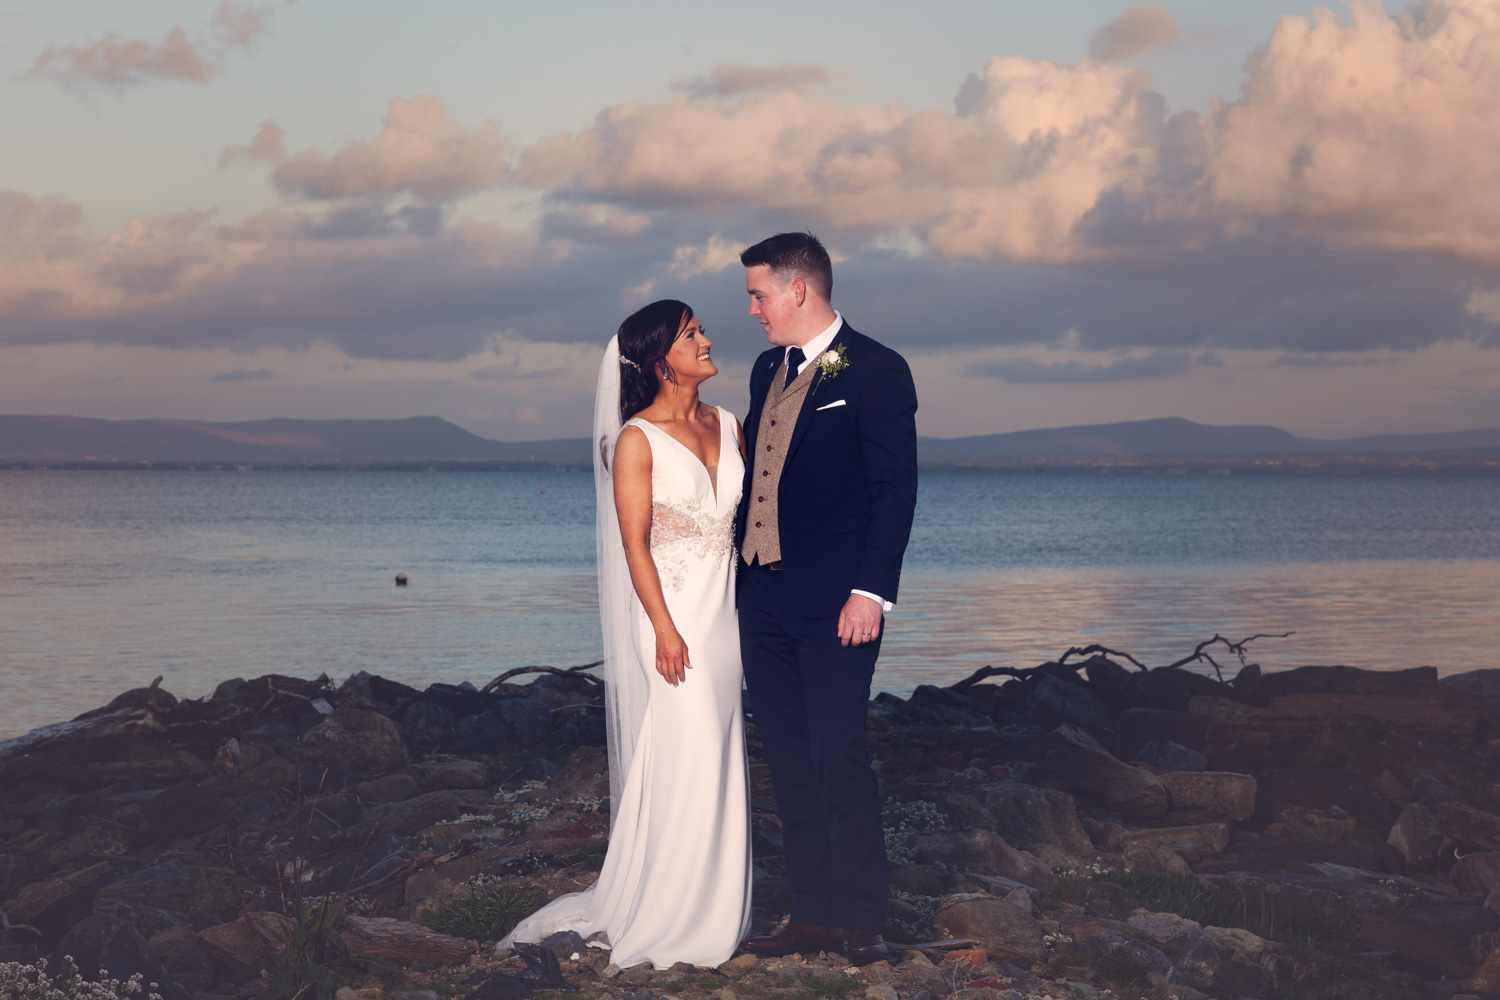 Mark_Barnes_Northern_Ireland_wedding_photographer_redcastle_hotel_Donegal_Wedding_photography_Donegal_wedding_photographer-49.jpg